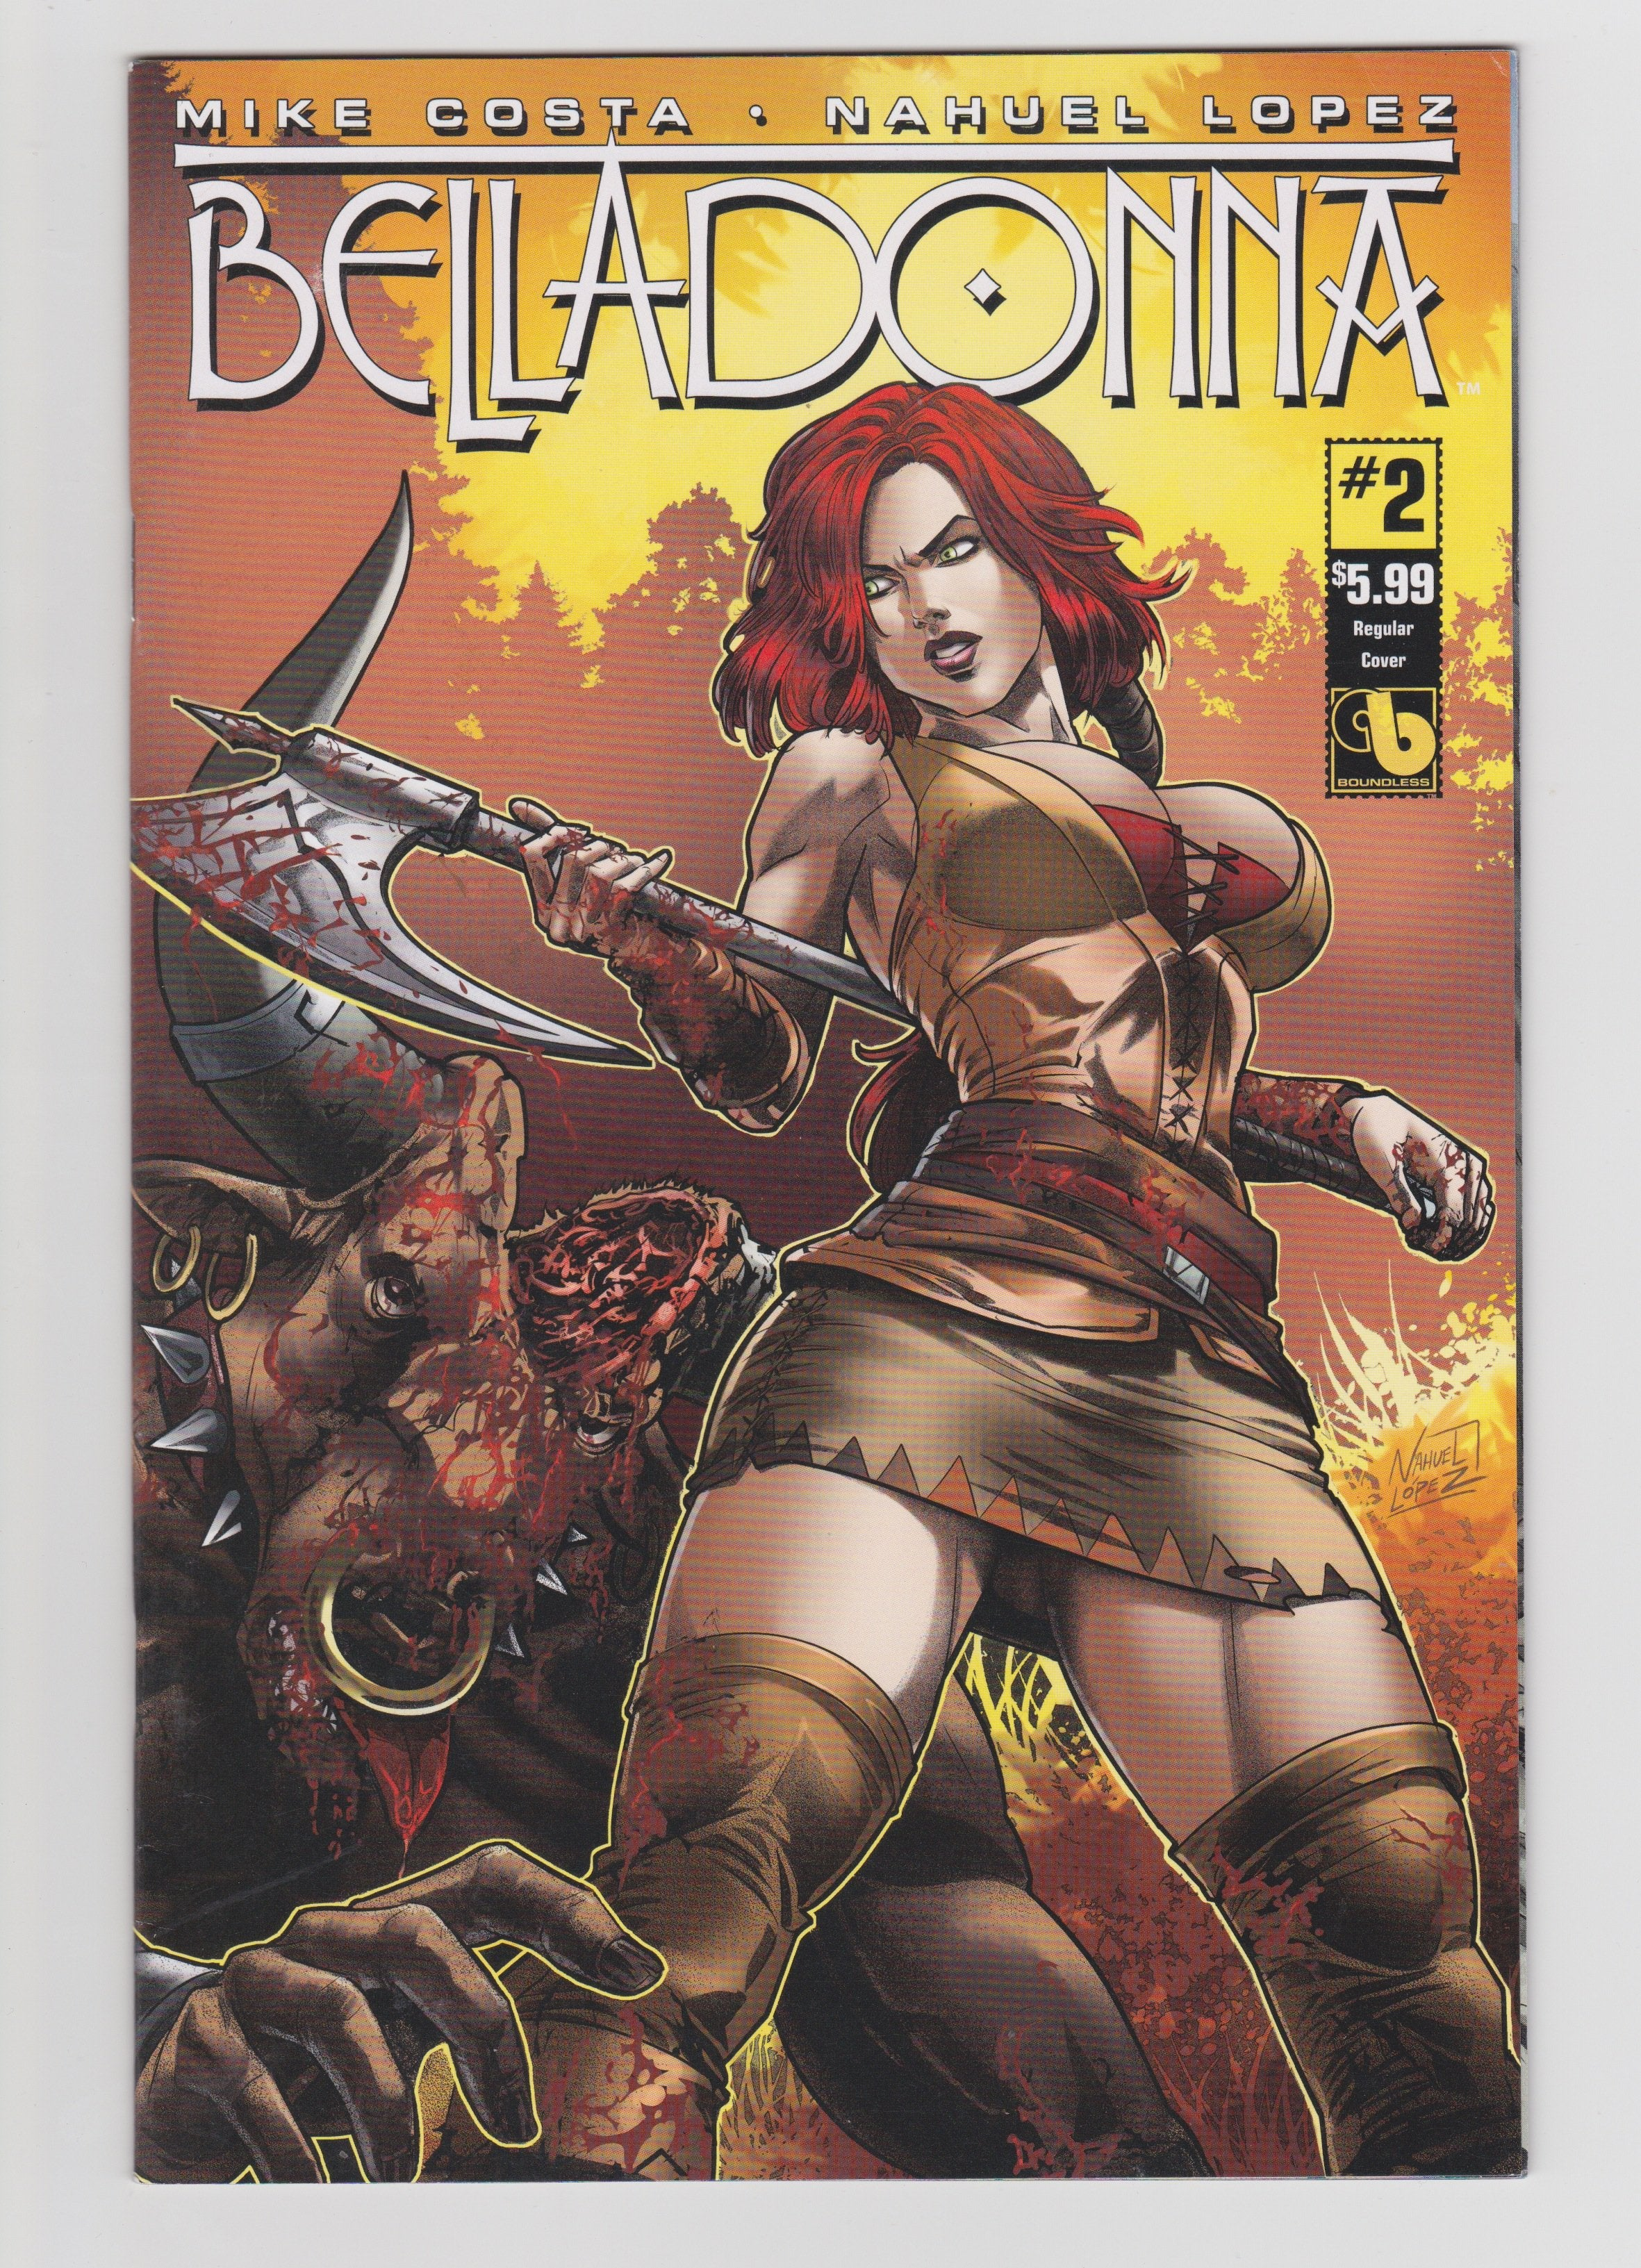 BELLADONNA #2 REGULAR COVER